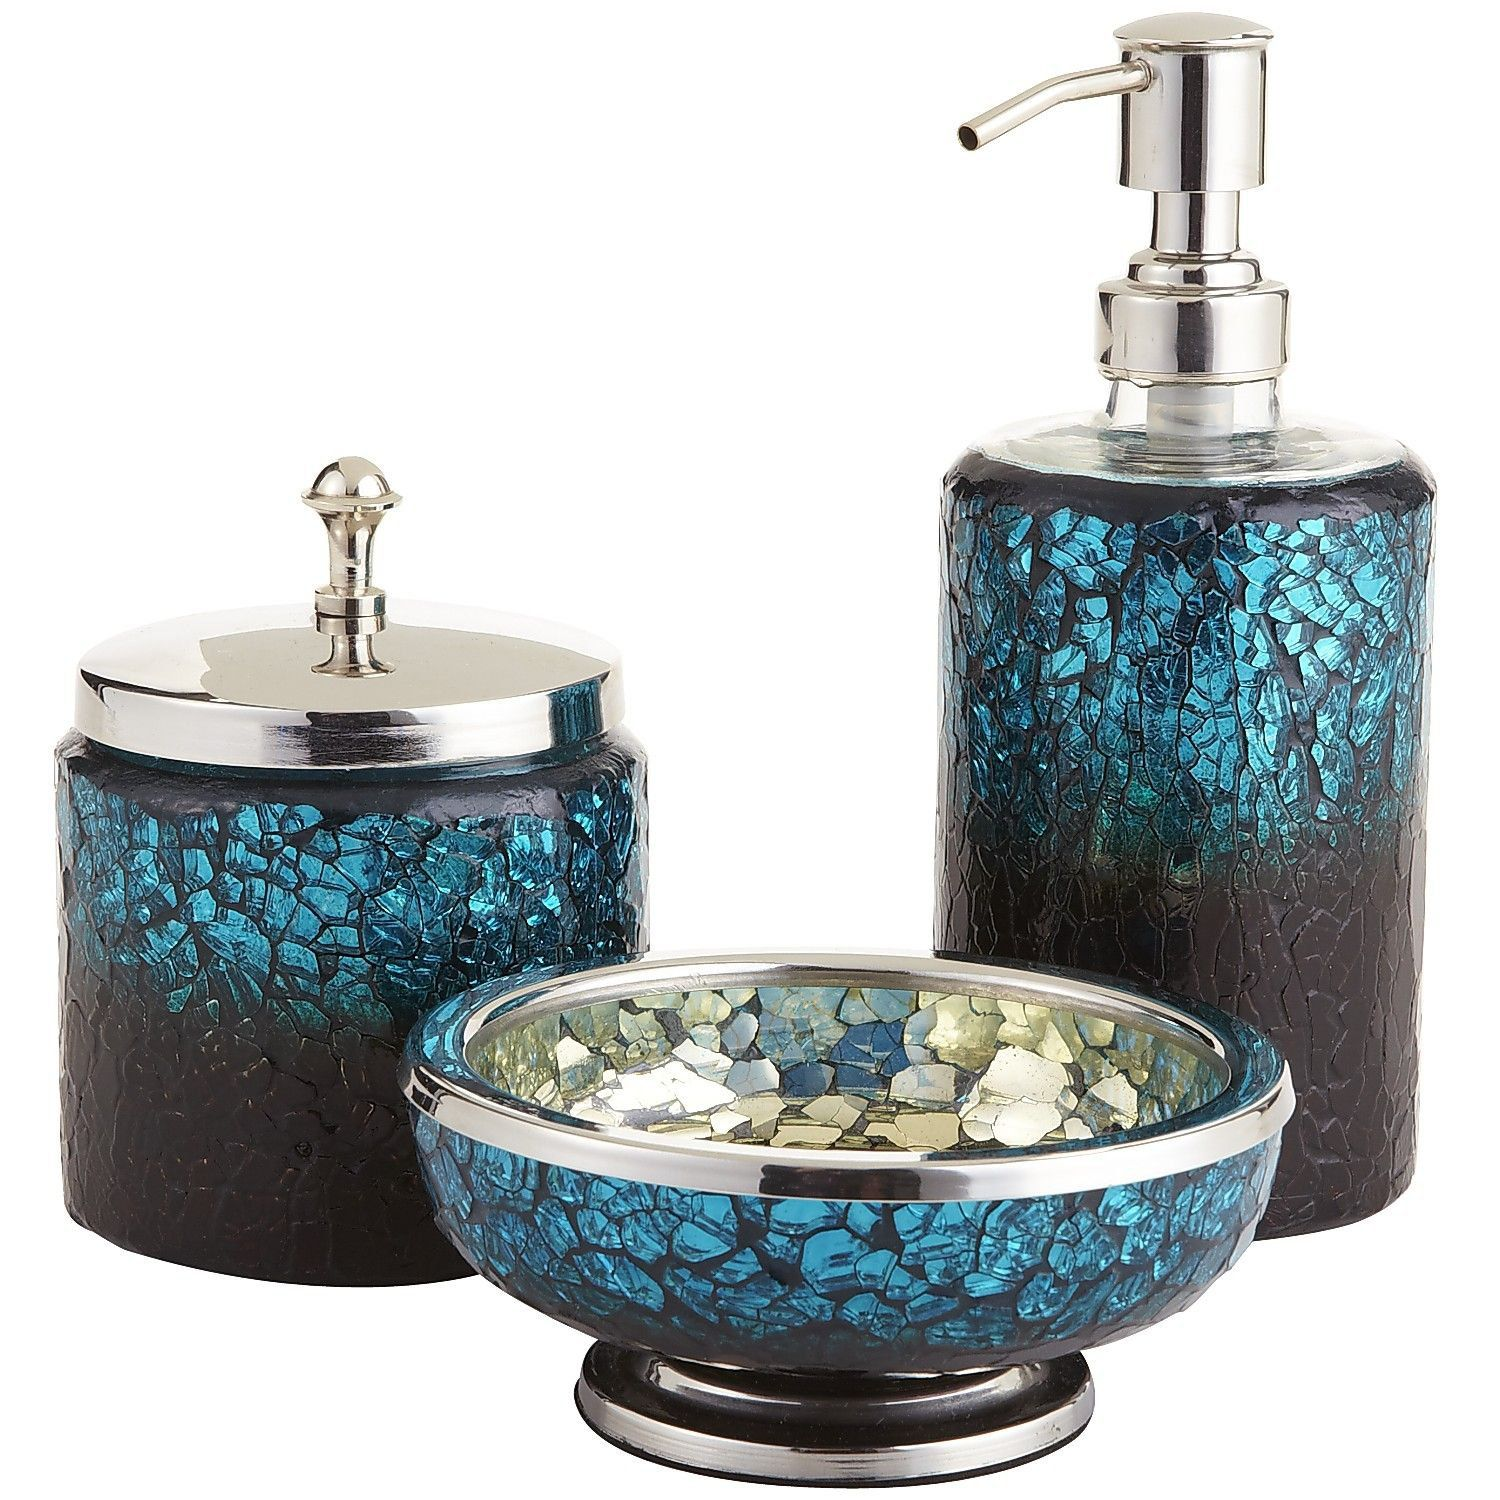 black mosaic bathroom accessories. Peacock Mosaic Bath Accessories  Can be made with the eggshell technique on old jars bottles painted metallic blue and black Pinteres